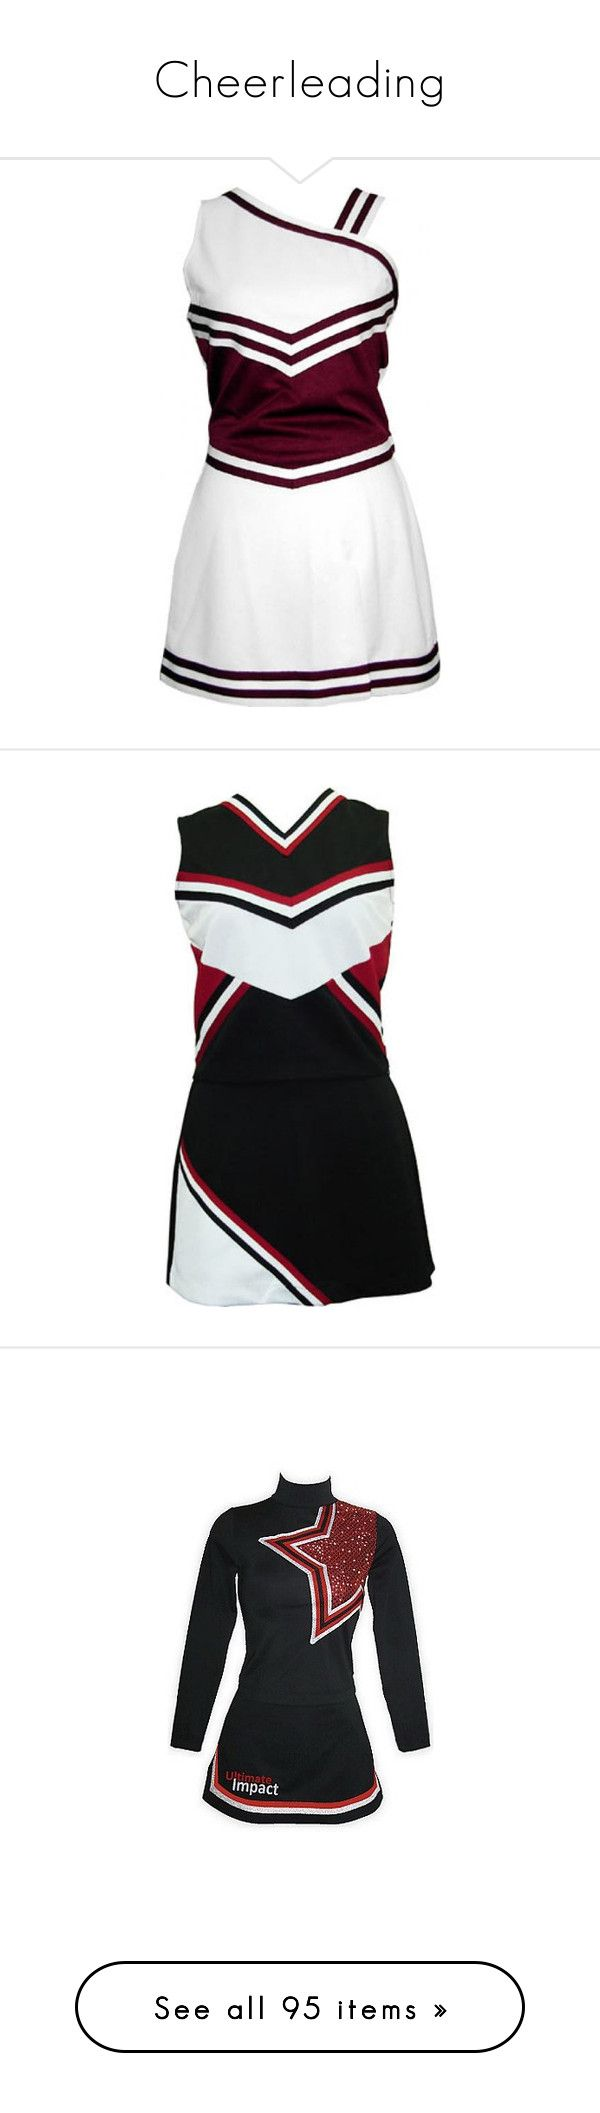 """Cheerleading"" by thelilfujoshi on Polyvore featuring cheerleading, dresses, cheer, sports, uniform, cheerleading uniforms, cheerleader, tops, blue striped top e knit top"